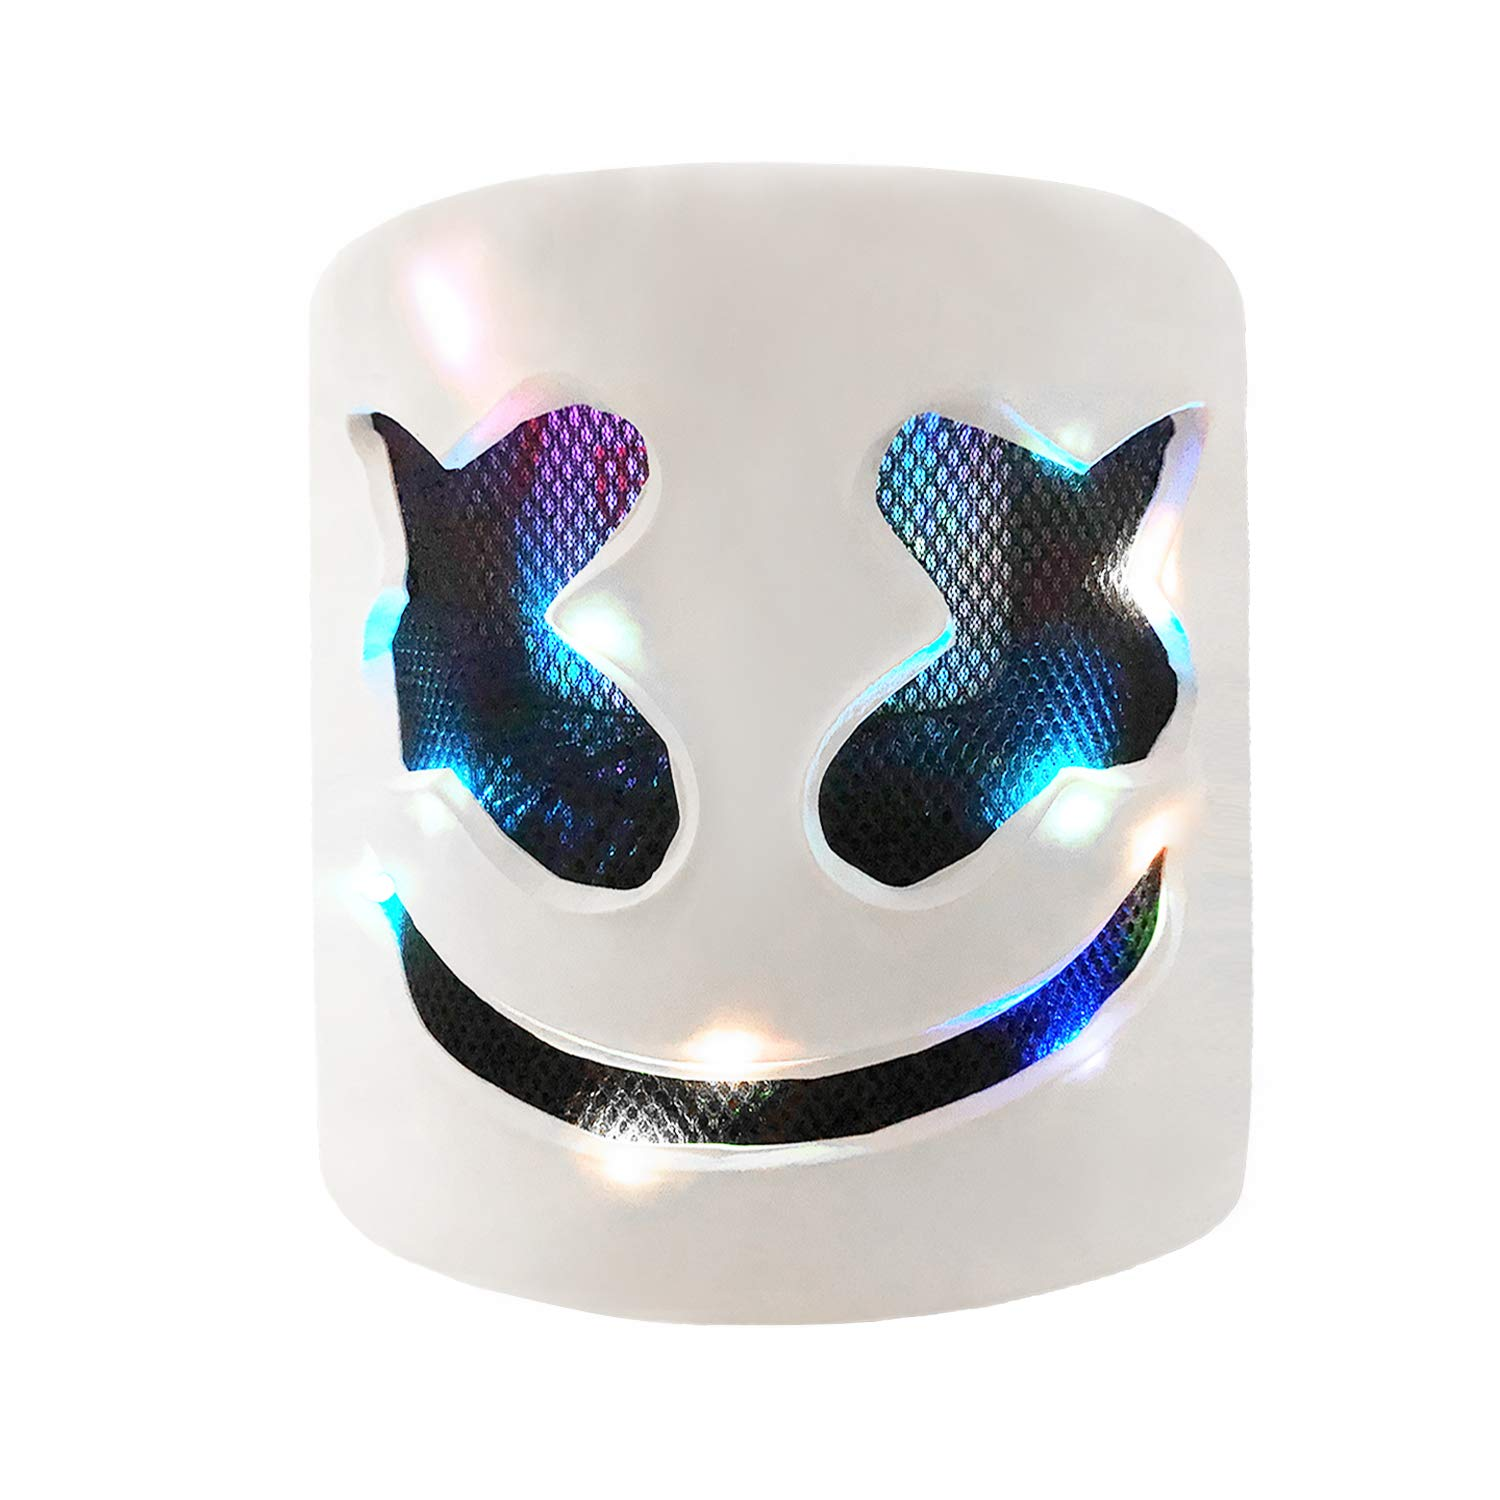 Funvolution DJ Helmet with LED 7 Color Light,DJ Mask for Kids and Adult,for Fans Meeting